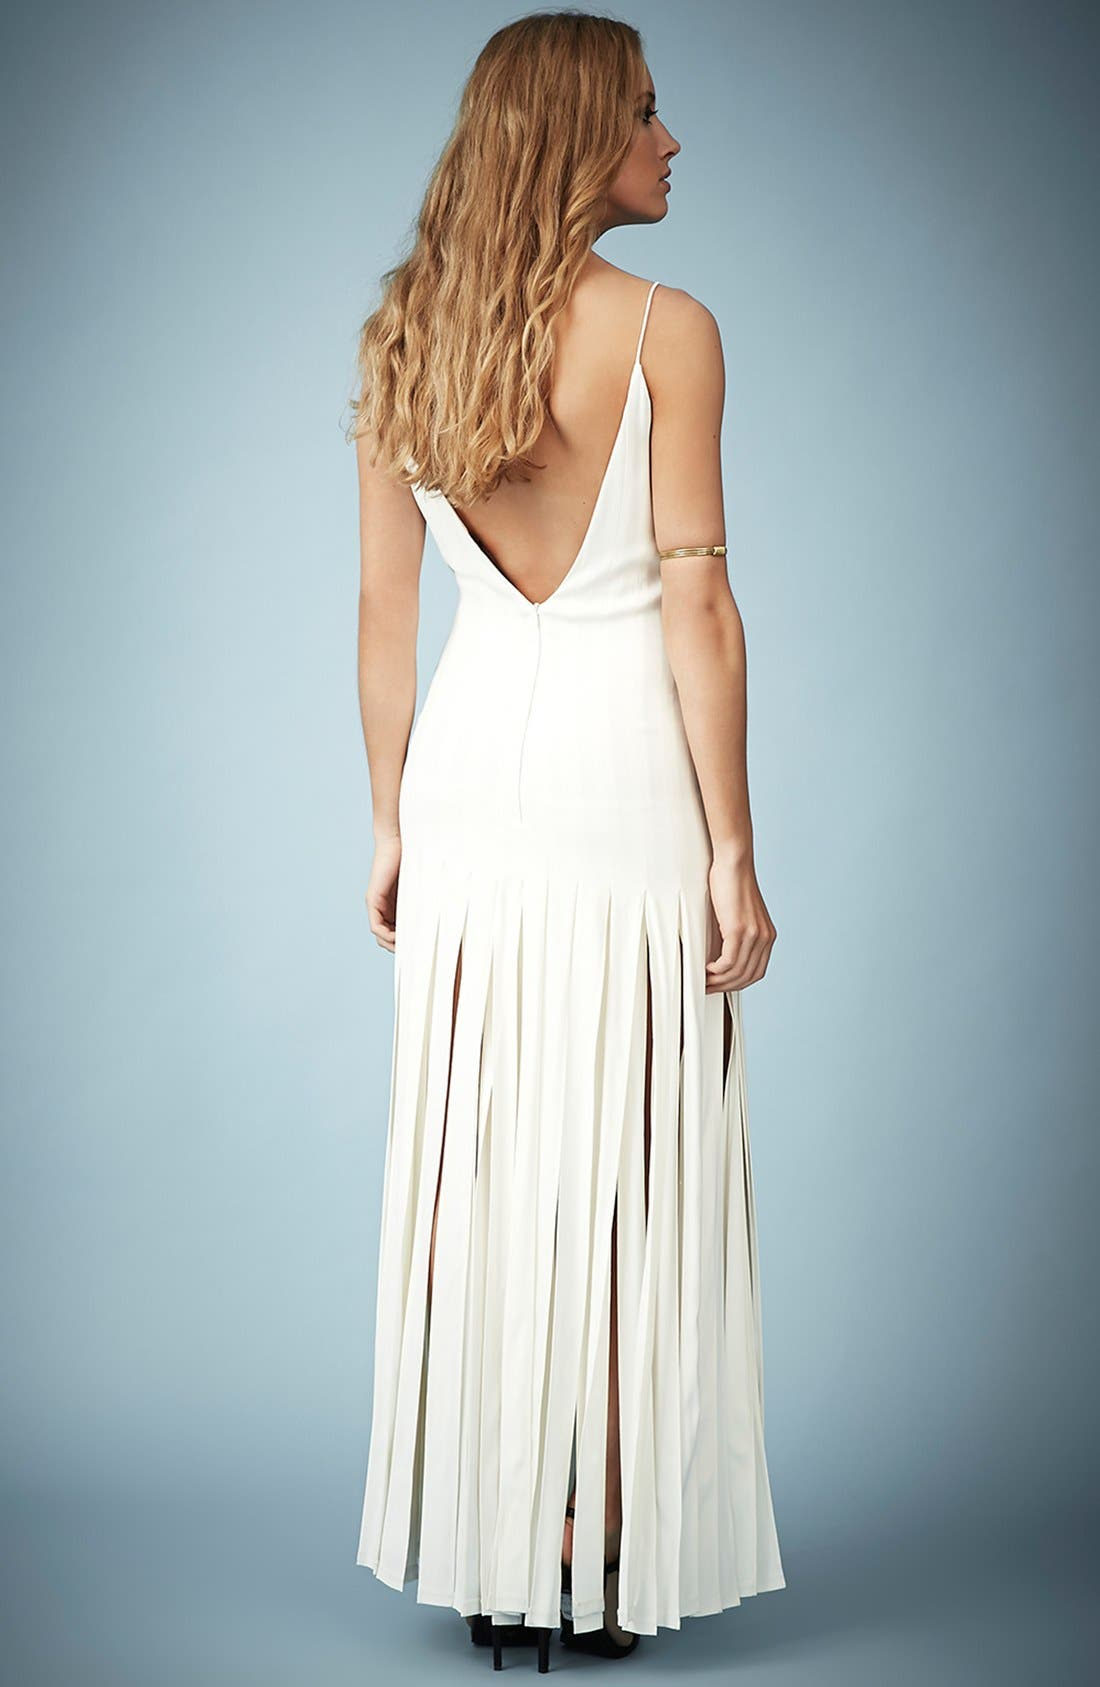 Kate Moss for Topshop Splice Skirt Maxi Dress,                             Alternate thumbnail 4, color,